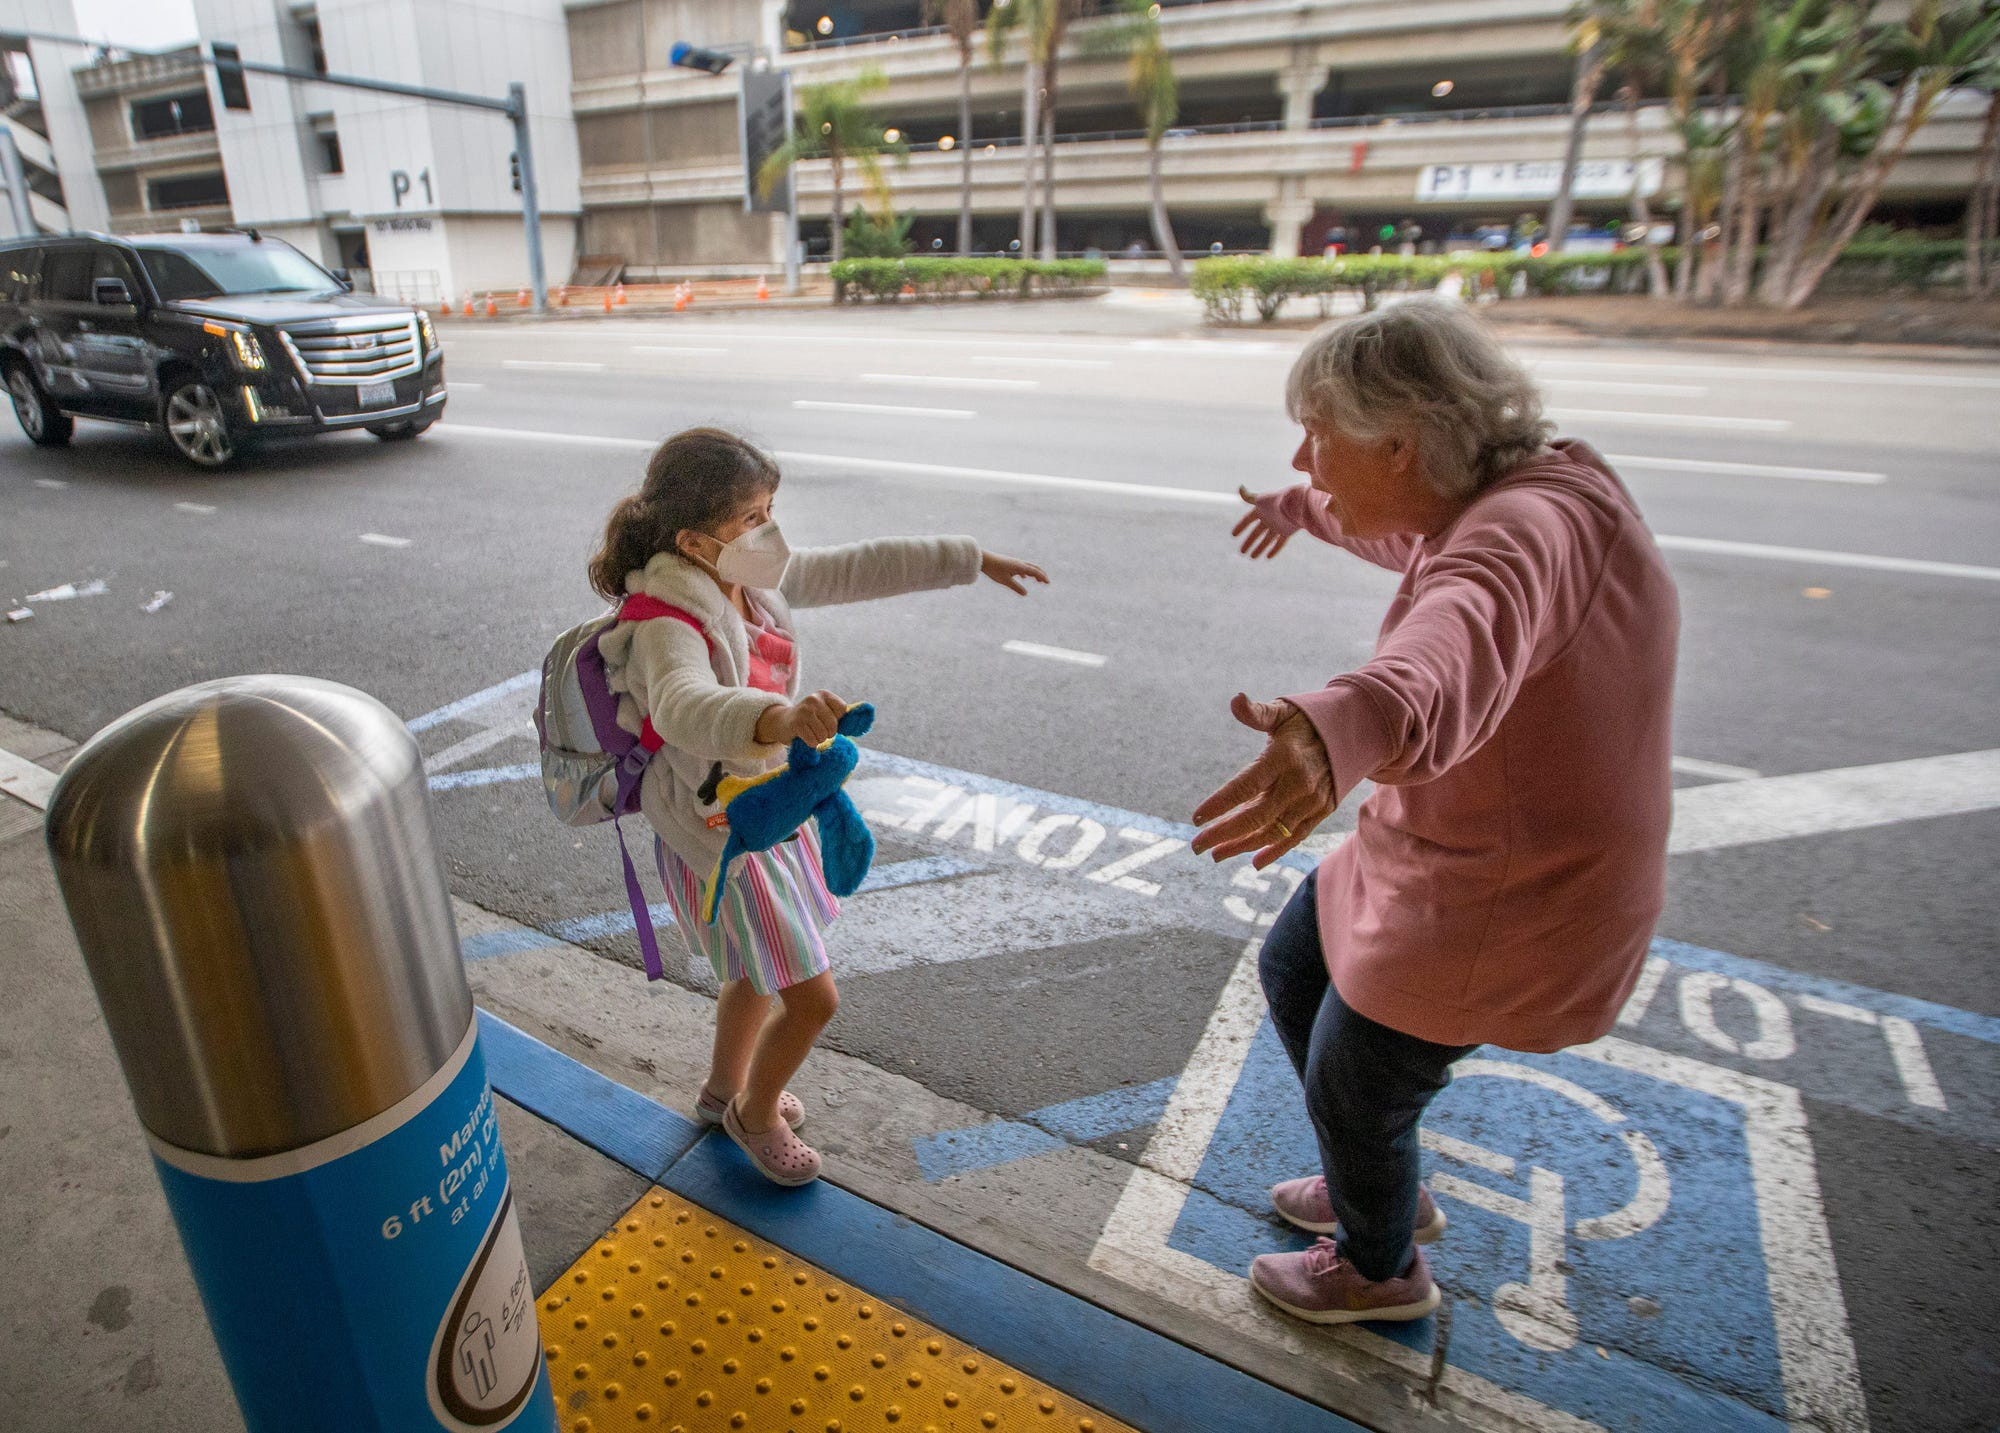 Seven-year-old Jacquie Carney runs to hug her grandma, Donna Vidrine, upon arrival in Los Angeles, California on November 23, 2020.